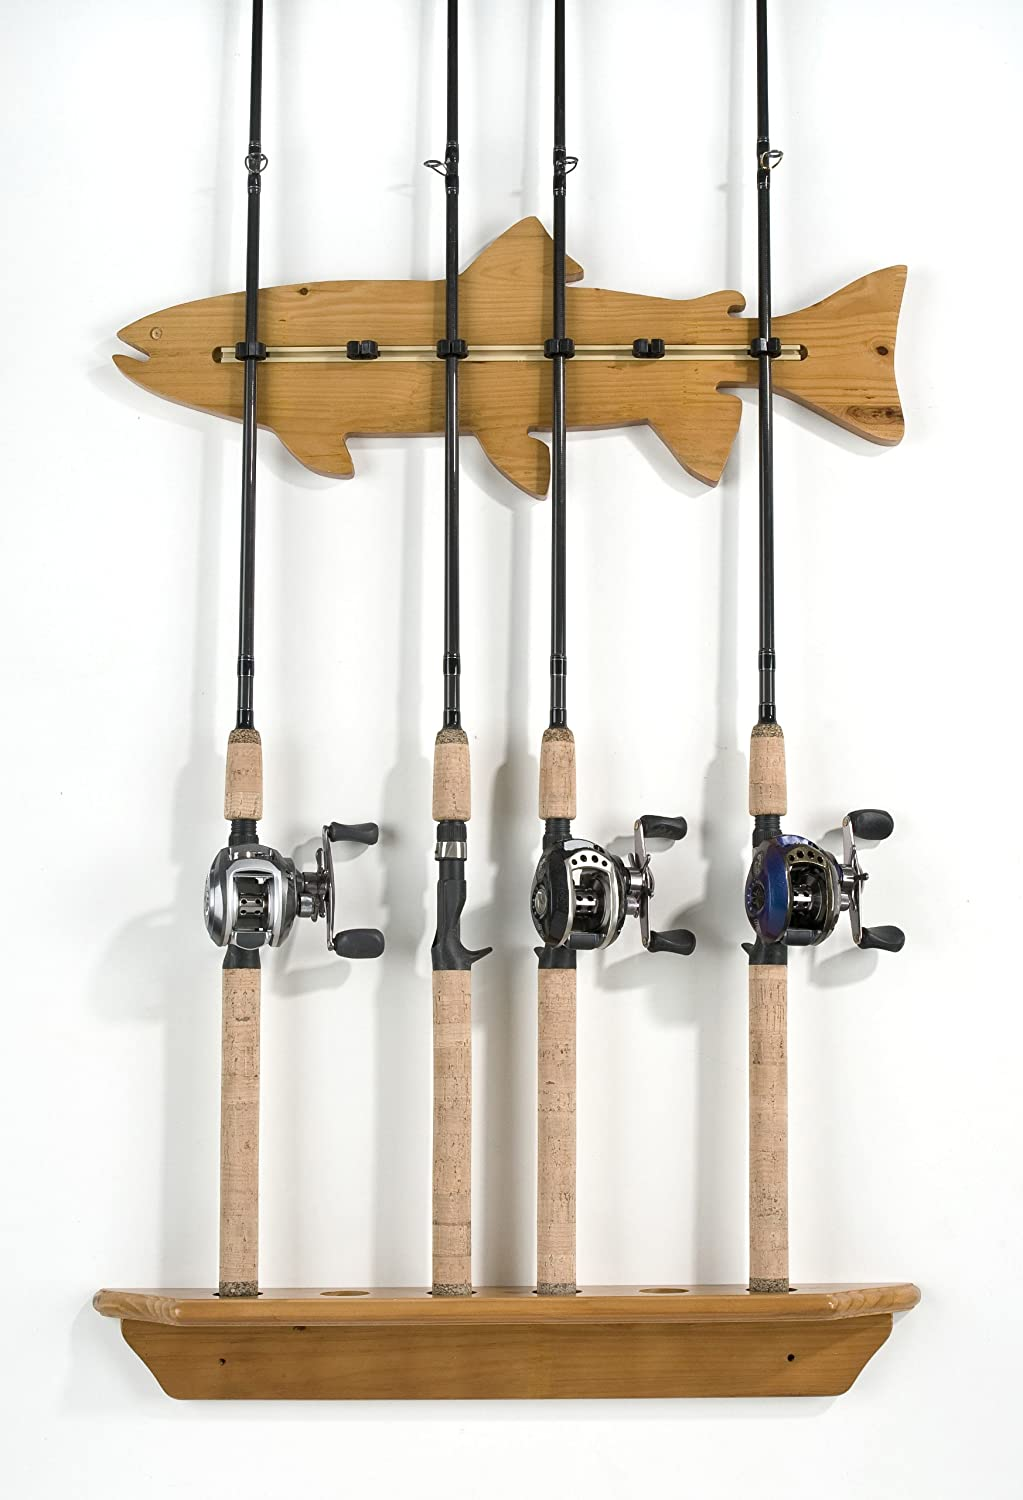 Organized Fishing Fish Wall Rack for Fishing Rod Storage, Holds up to 6 Fishing Rods, Oak Finish, FWR-006